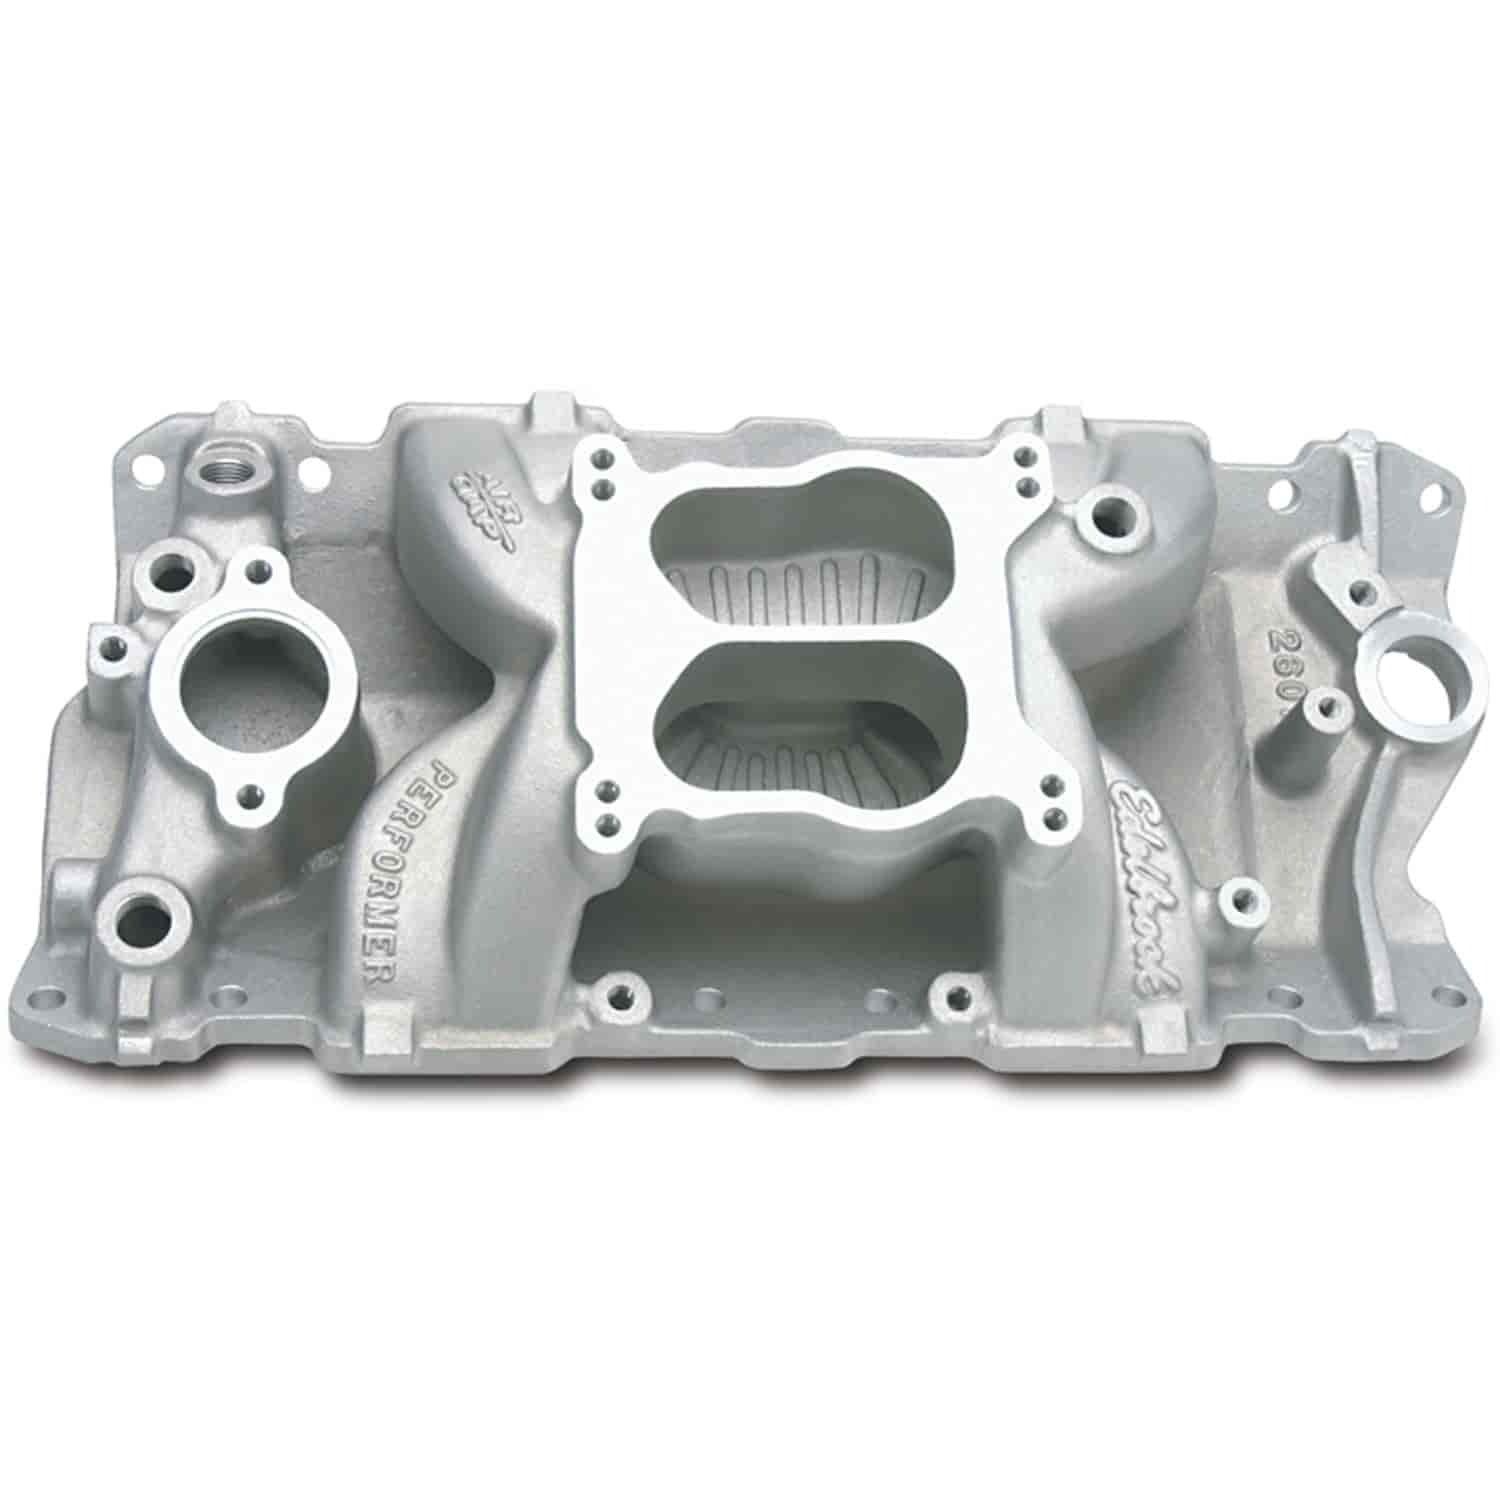 Edelbrock 2601 - Edelbrock Performer Air-Gap Intake Manifold for Chevy